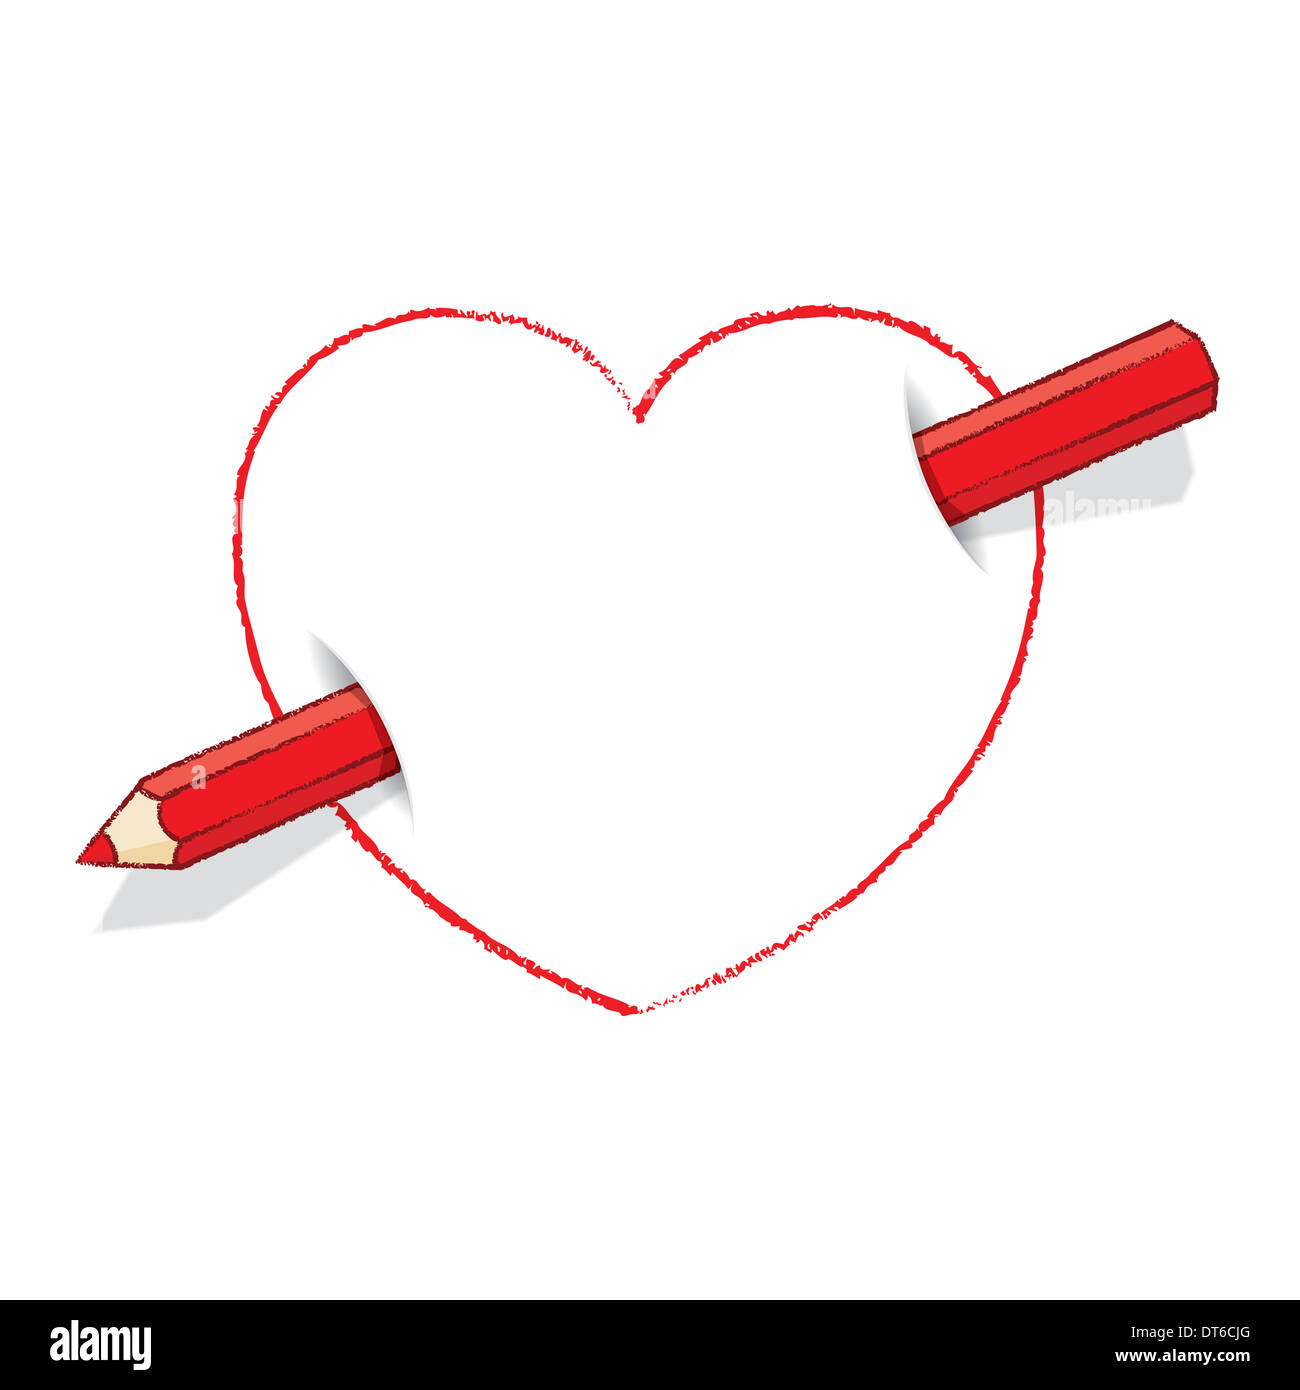 Diagonal red pencil piercing empty drawn love heart like an arrow diagonal red pencil piercing empty drawn love heart like an arrow ccuart